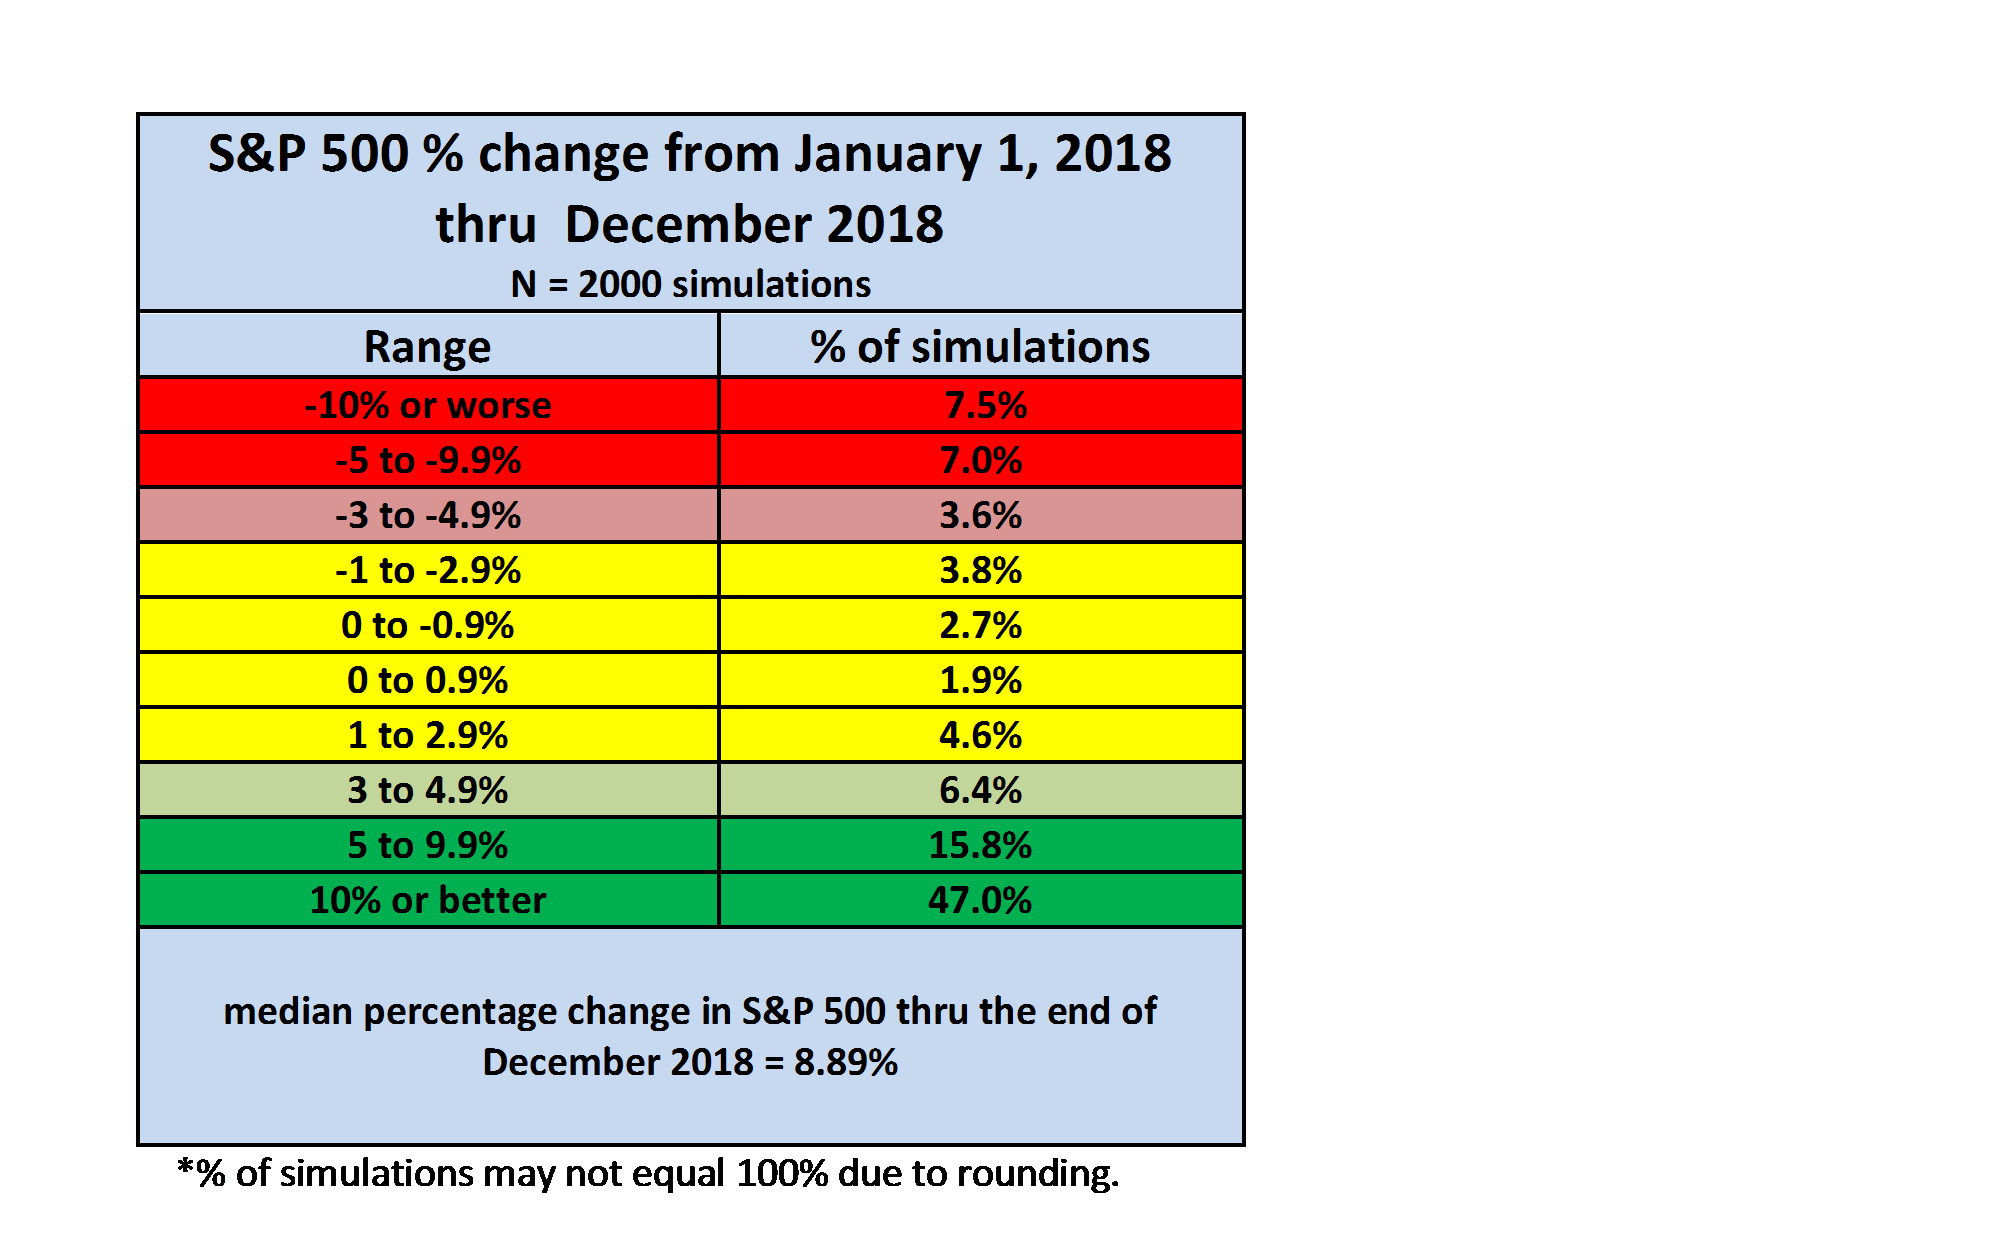 Spxs Quote A Monte Carlo Simulation Of The S&p 500 For 2018  Seeking Alpha